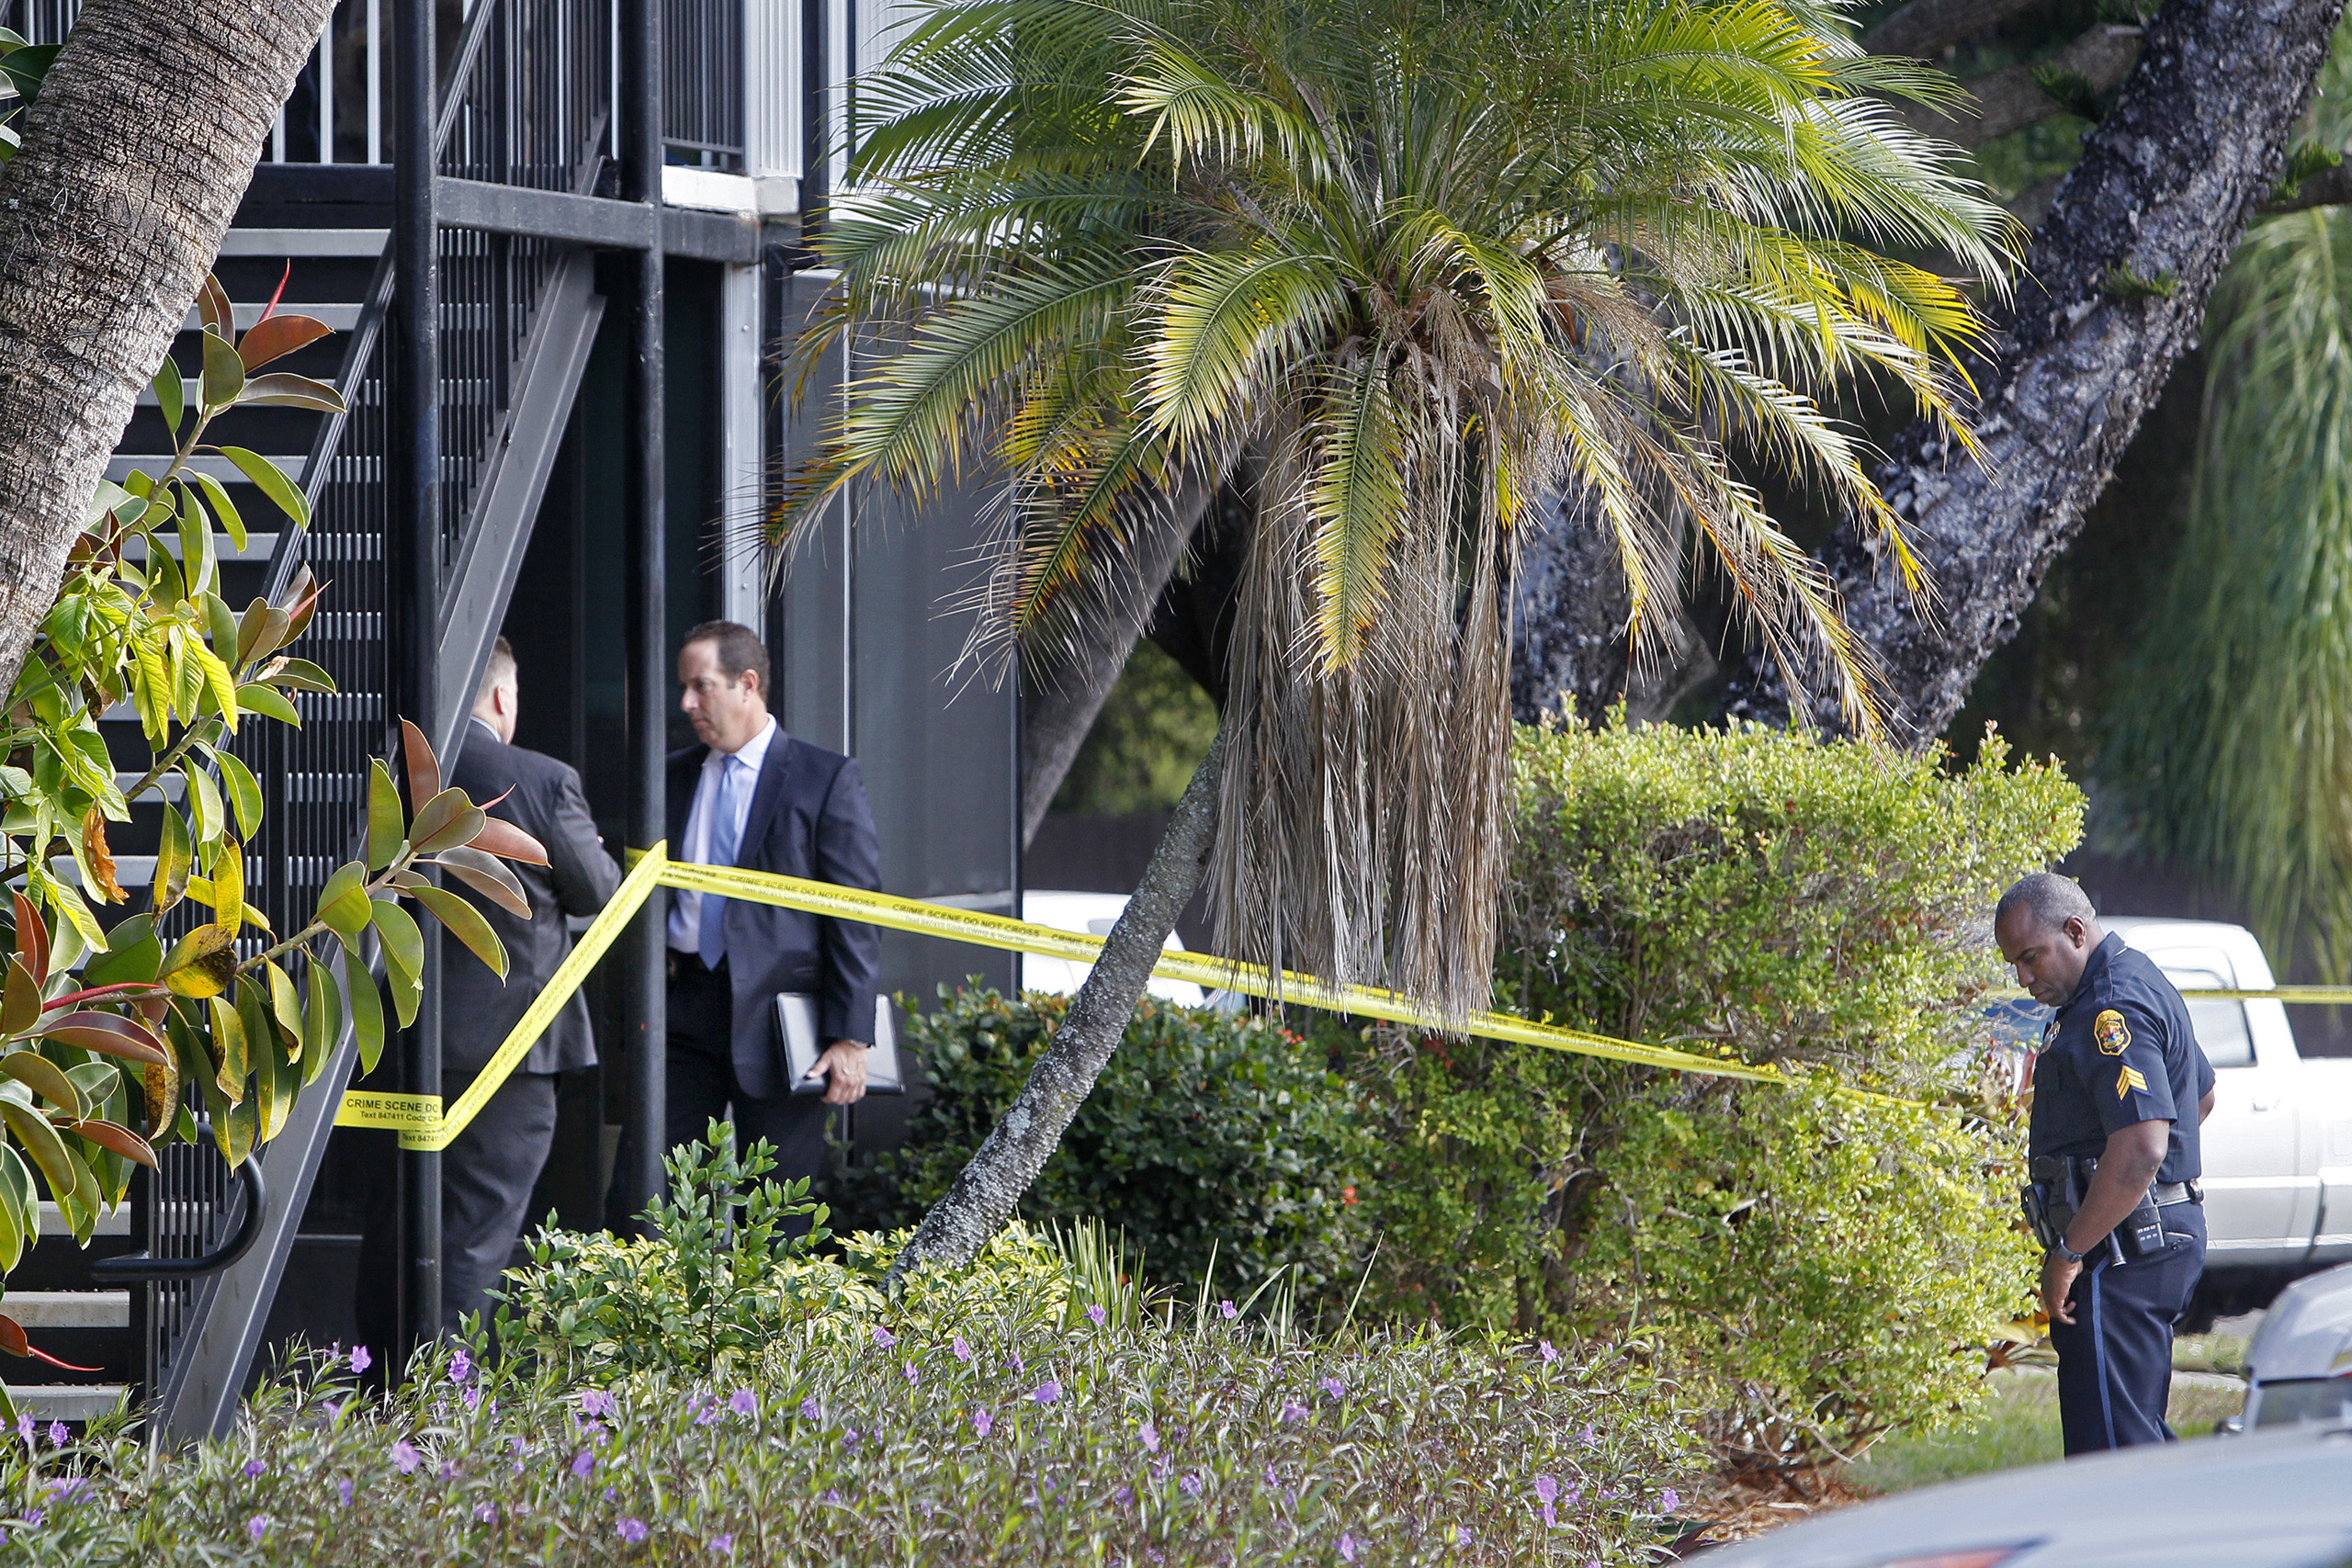 Clearwater Police detectives and an officer stand outside the ground floor apartment where a 10-year-old boy was fatally shot in his home in Clearwater, Fla., on Jan. 5, 2017.